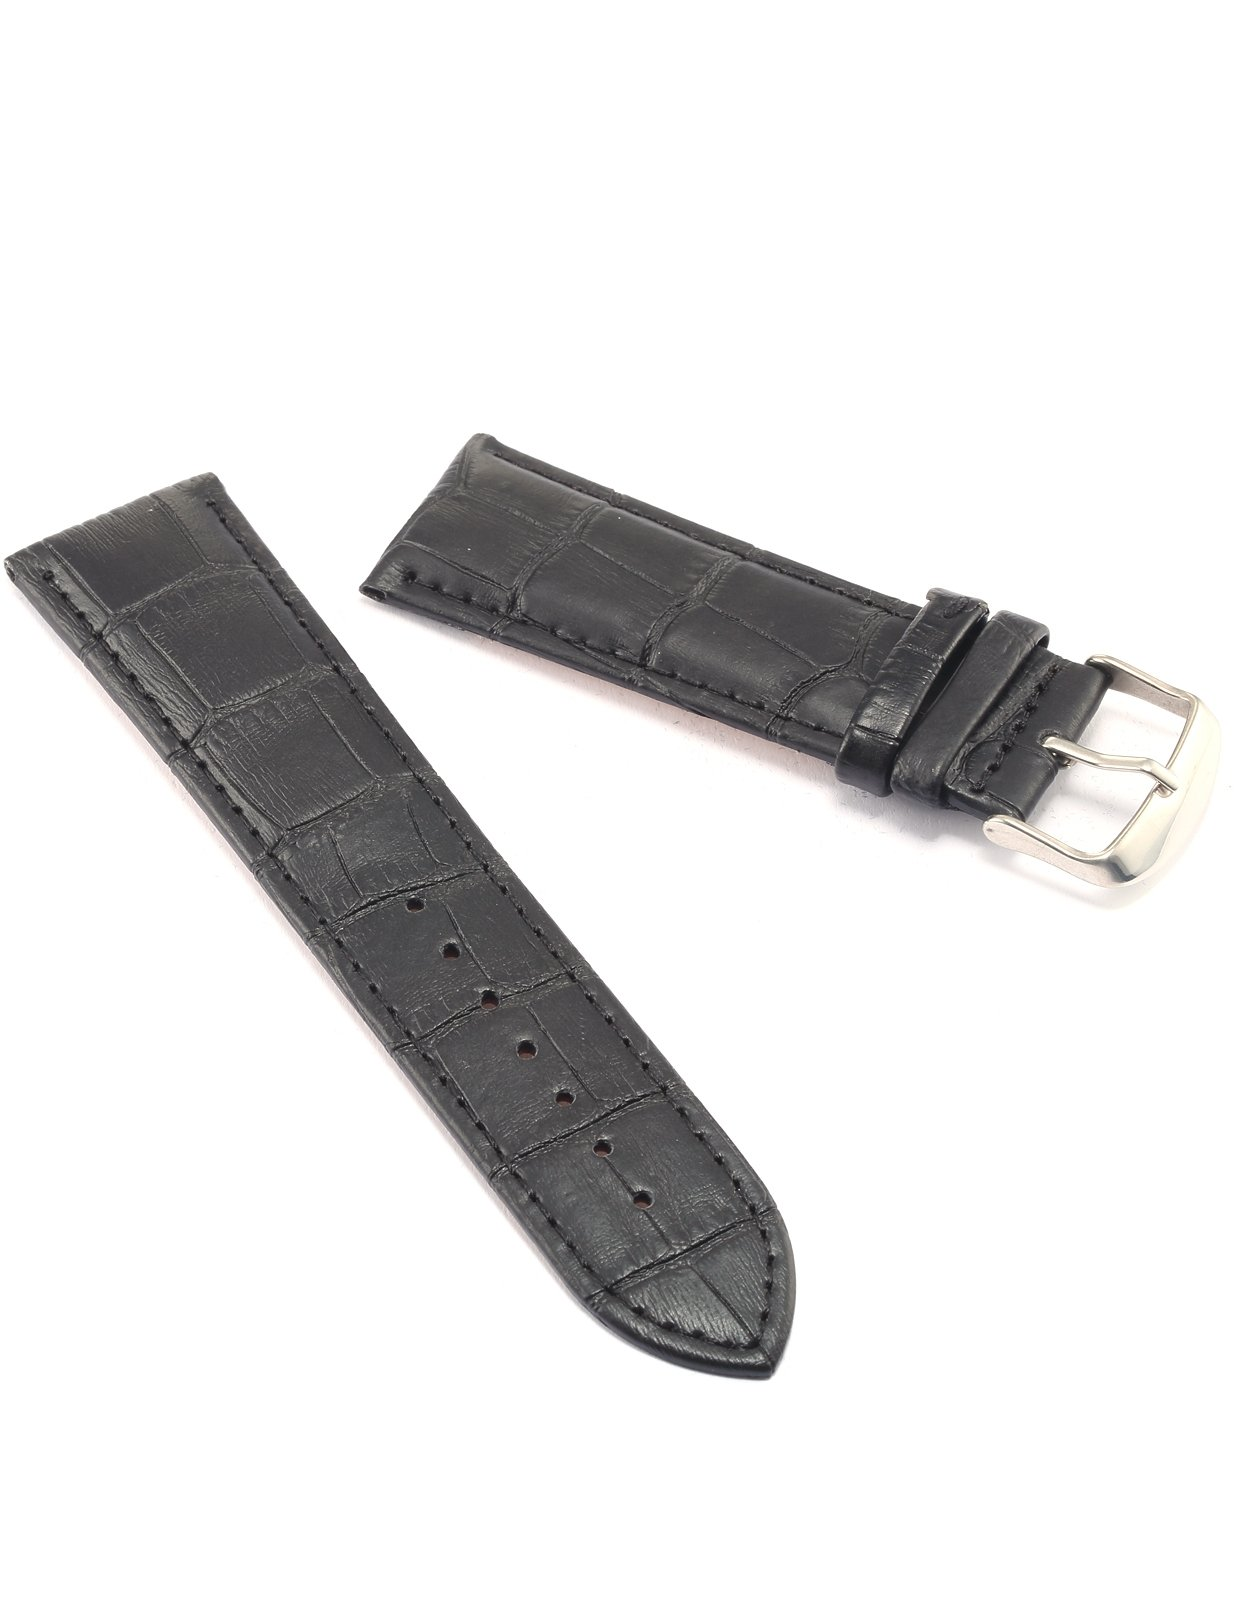 24mm Black PU Leather Watch Band Strap For Men Women WB2408